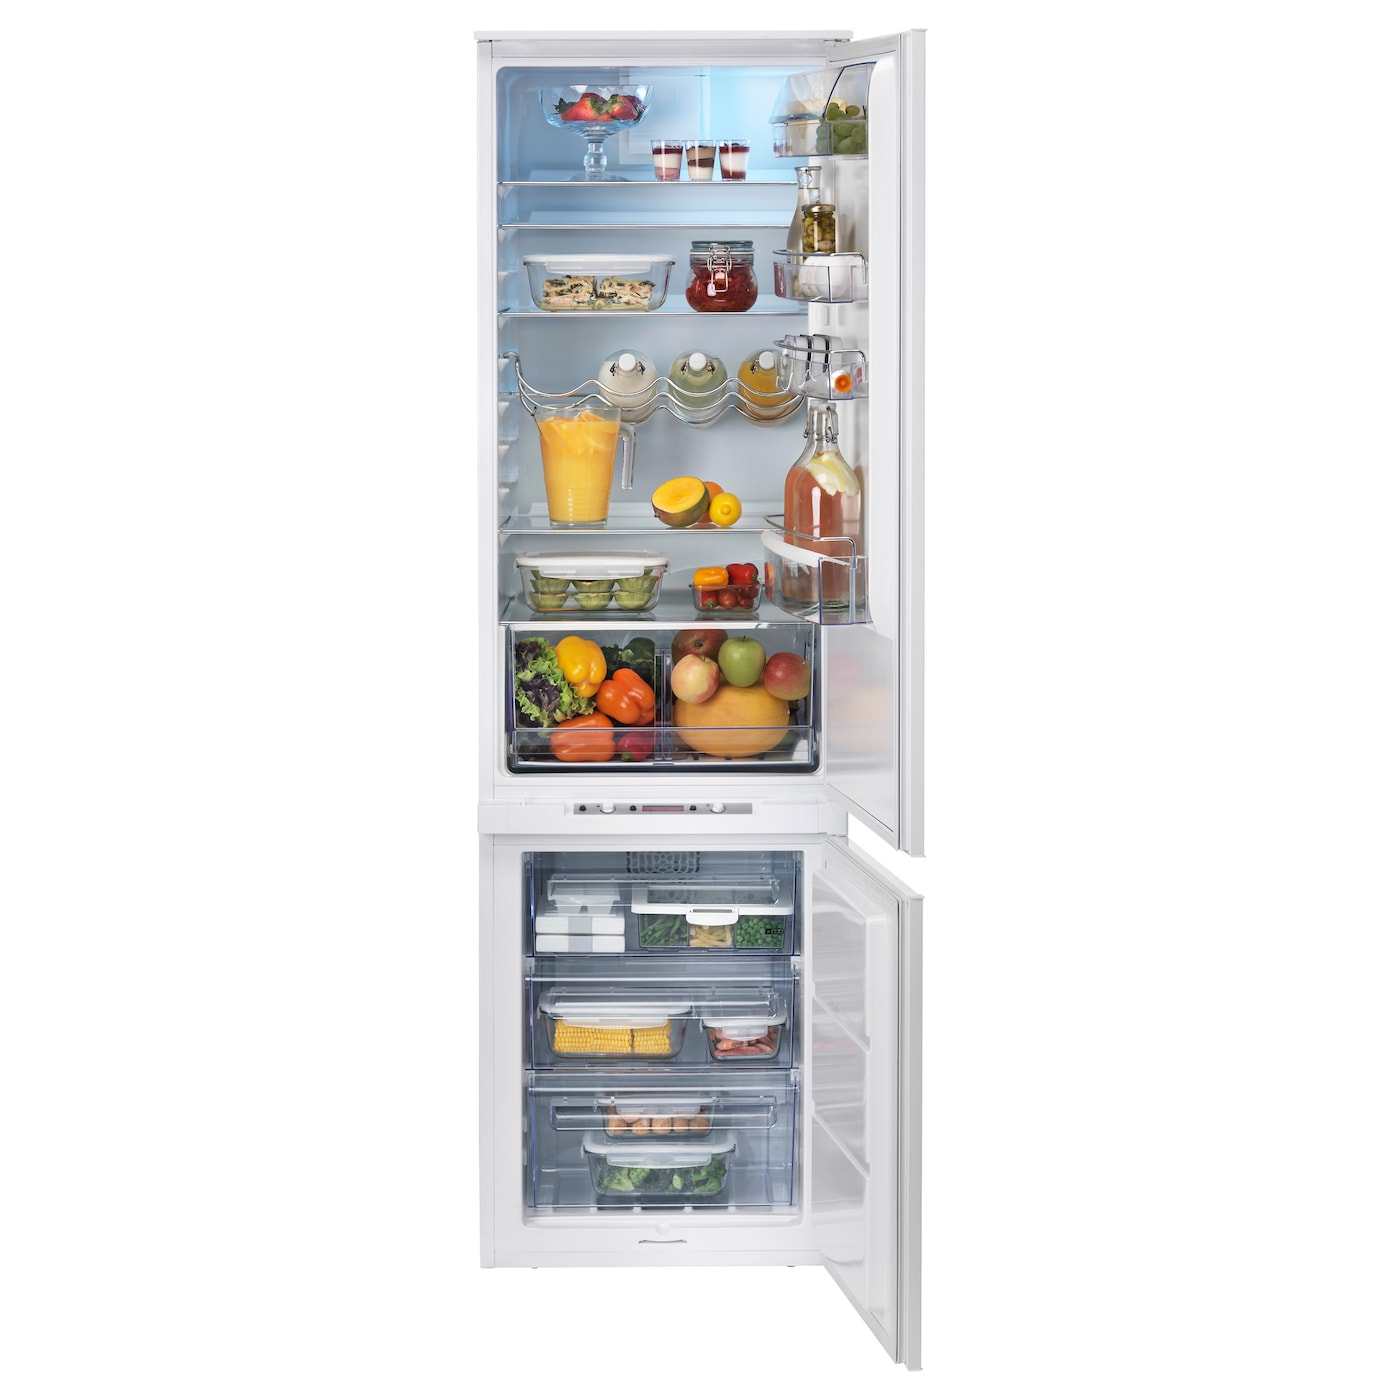 ikea fridges freezers ireland dublin. Black Bedroom Furniture Sets. Home Design Ideas